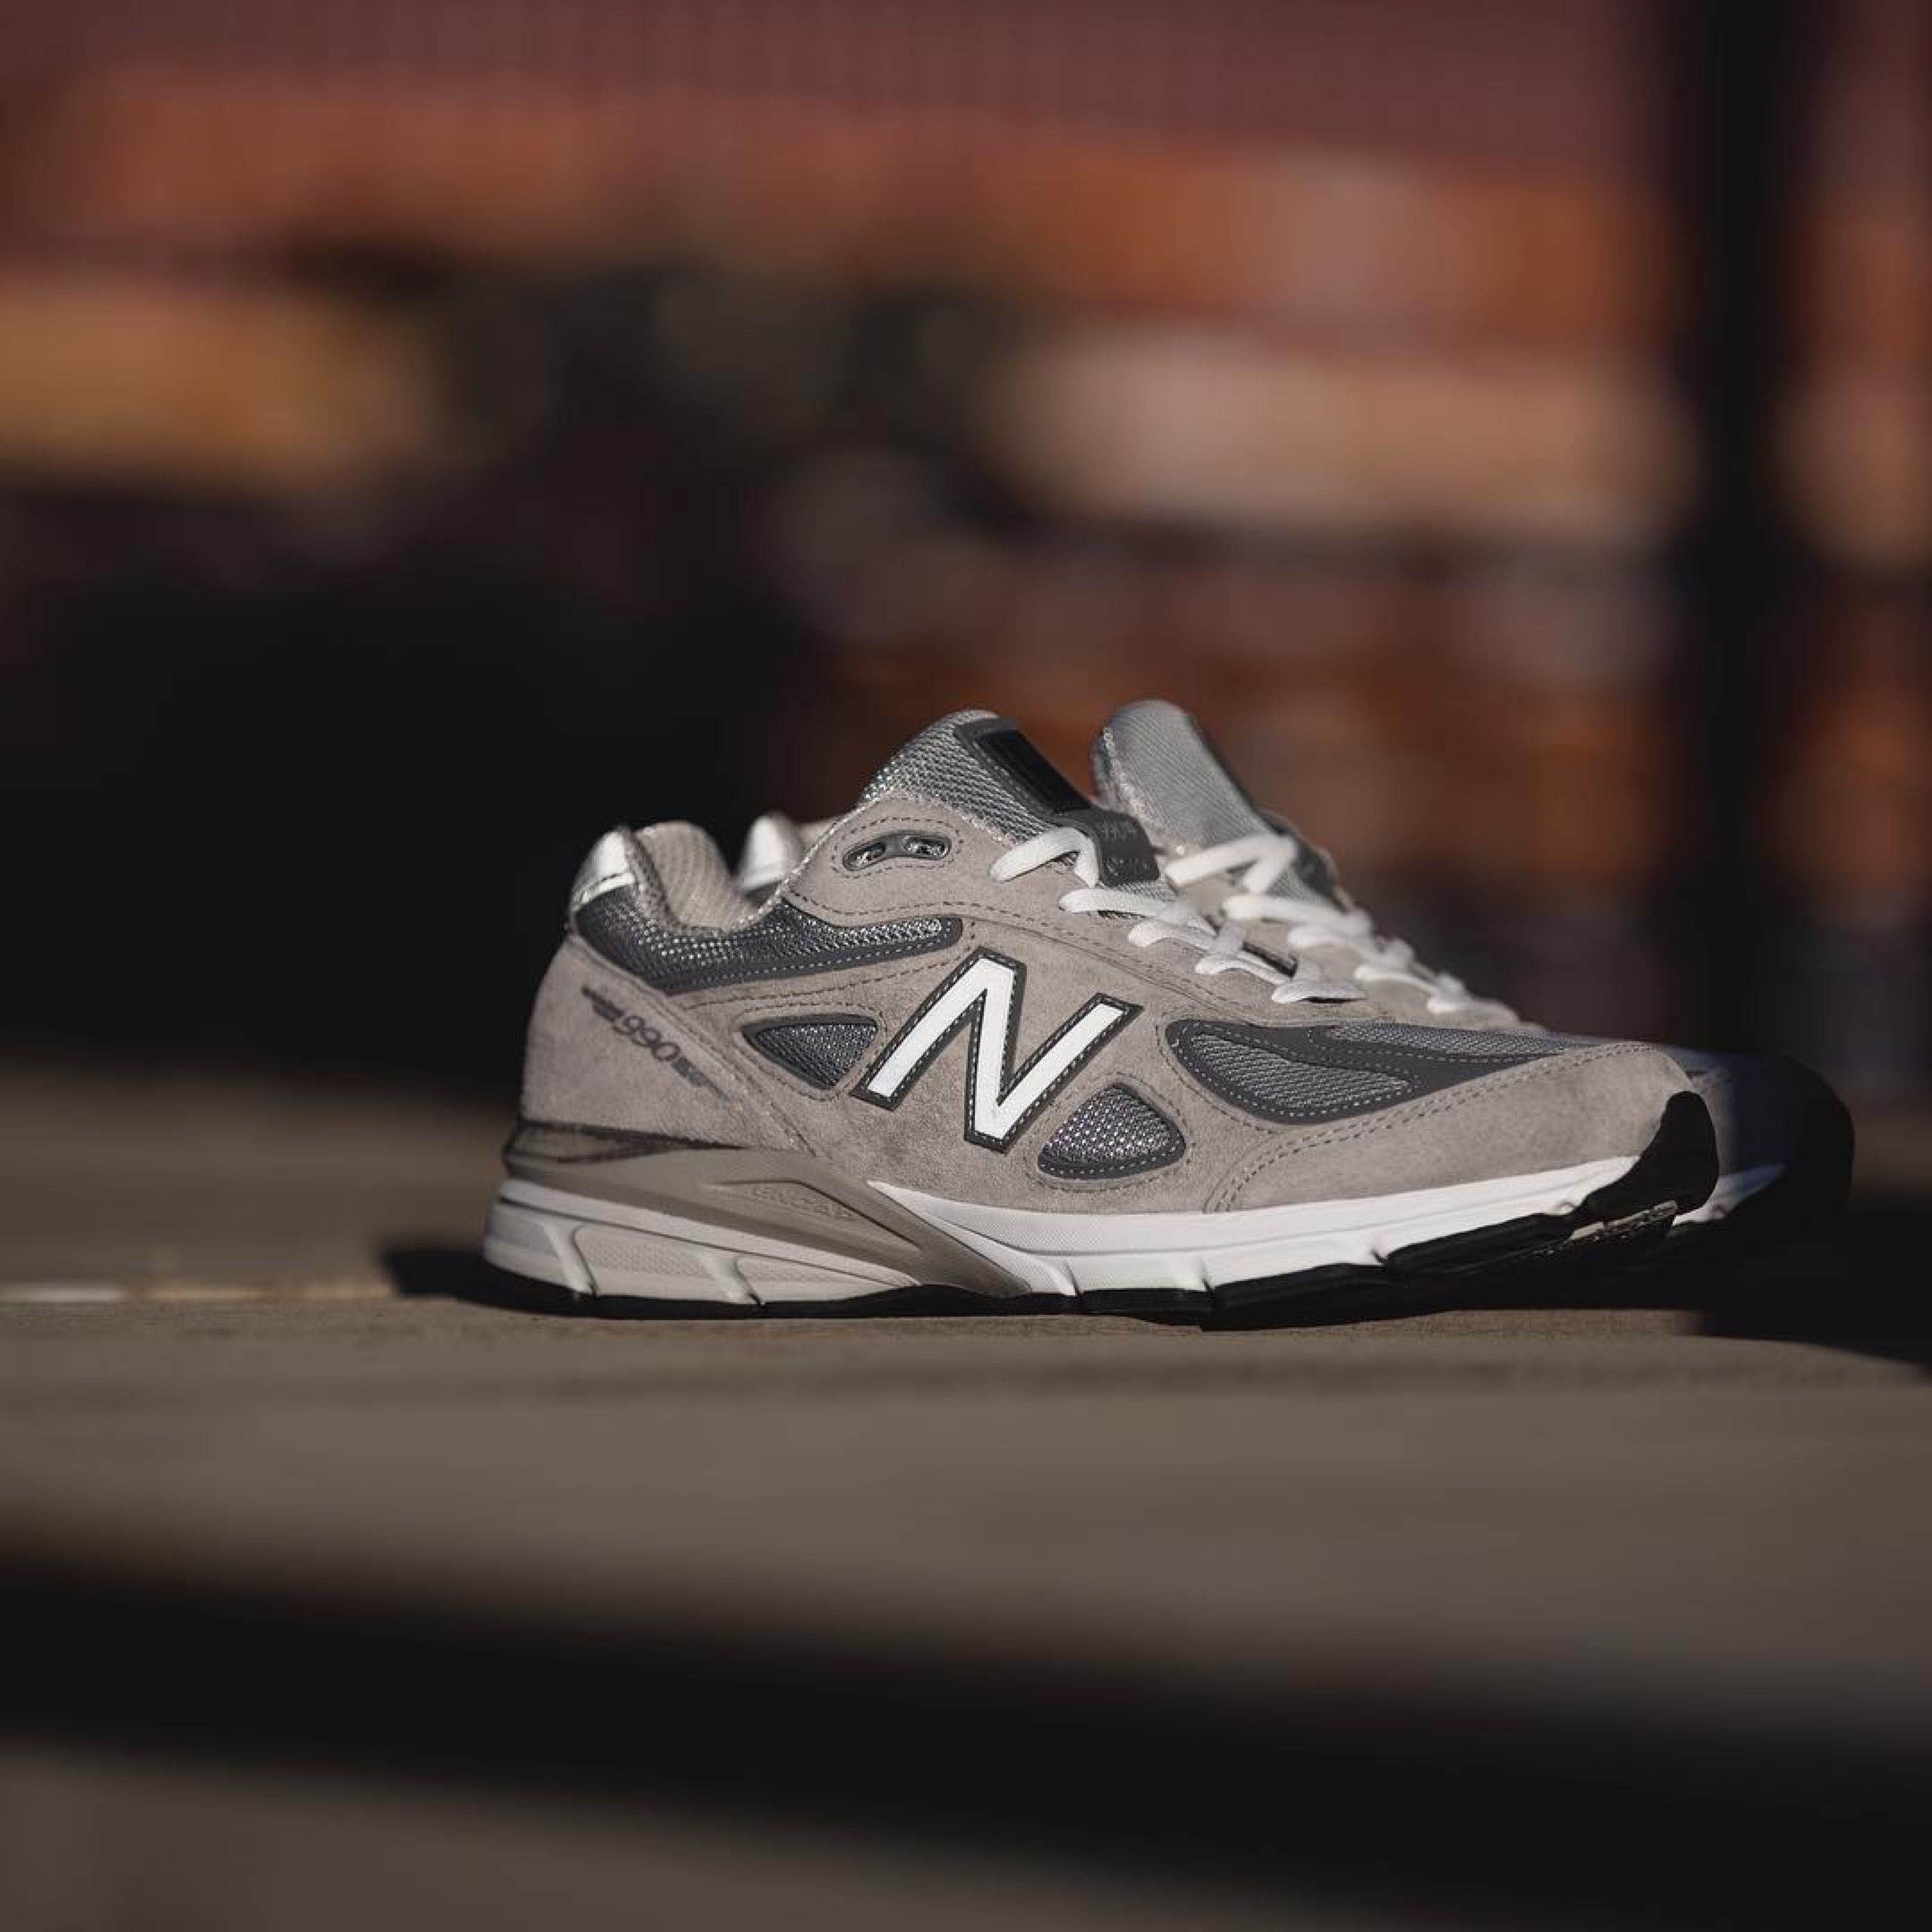 separation shoes 91d7e 979cd Repost @newbalance ・・・ Designed without compromise. #990 ...